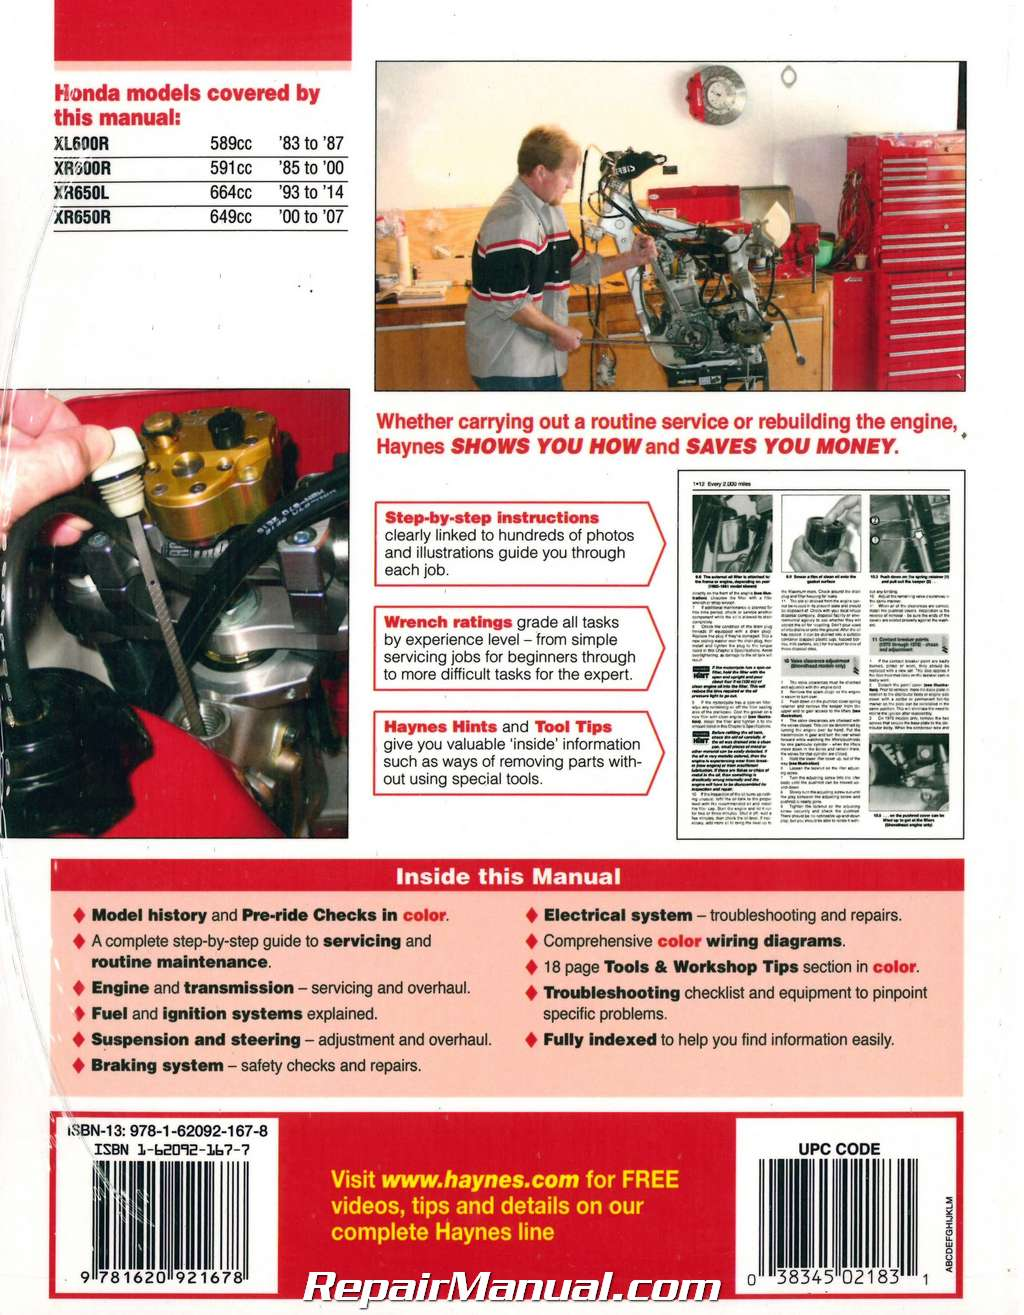 Honda Xl Xr600r Xr650l R 1983 2014 Haynes Motorcycle Repair Manual Diagrams H21831 Doc01054320151020131248 004